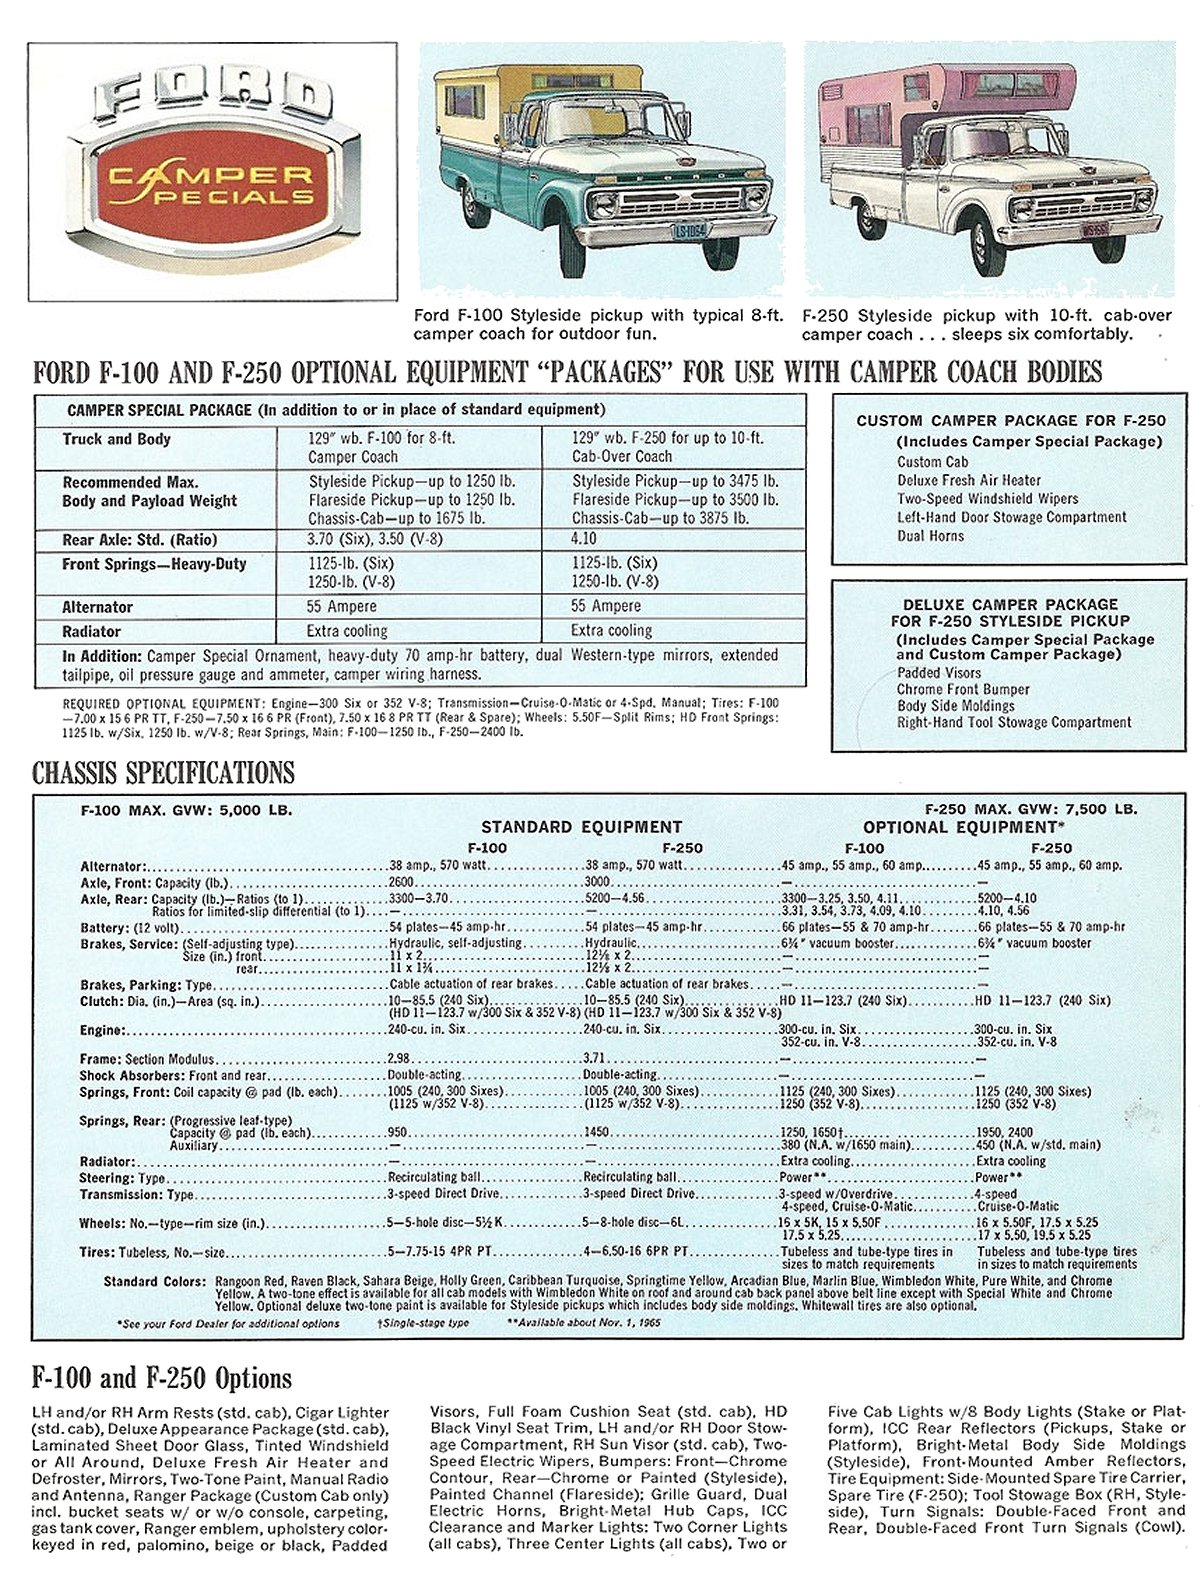 Ford F 250 Camper Special 352 V8 1965 & sales brochure Ford Pick-up ...